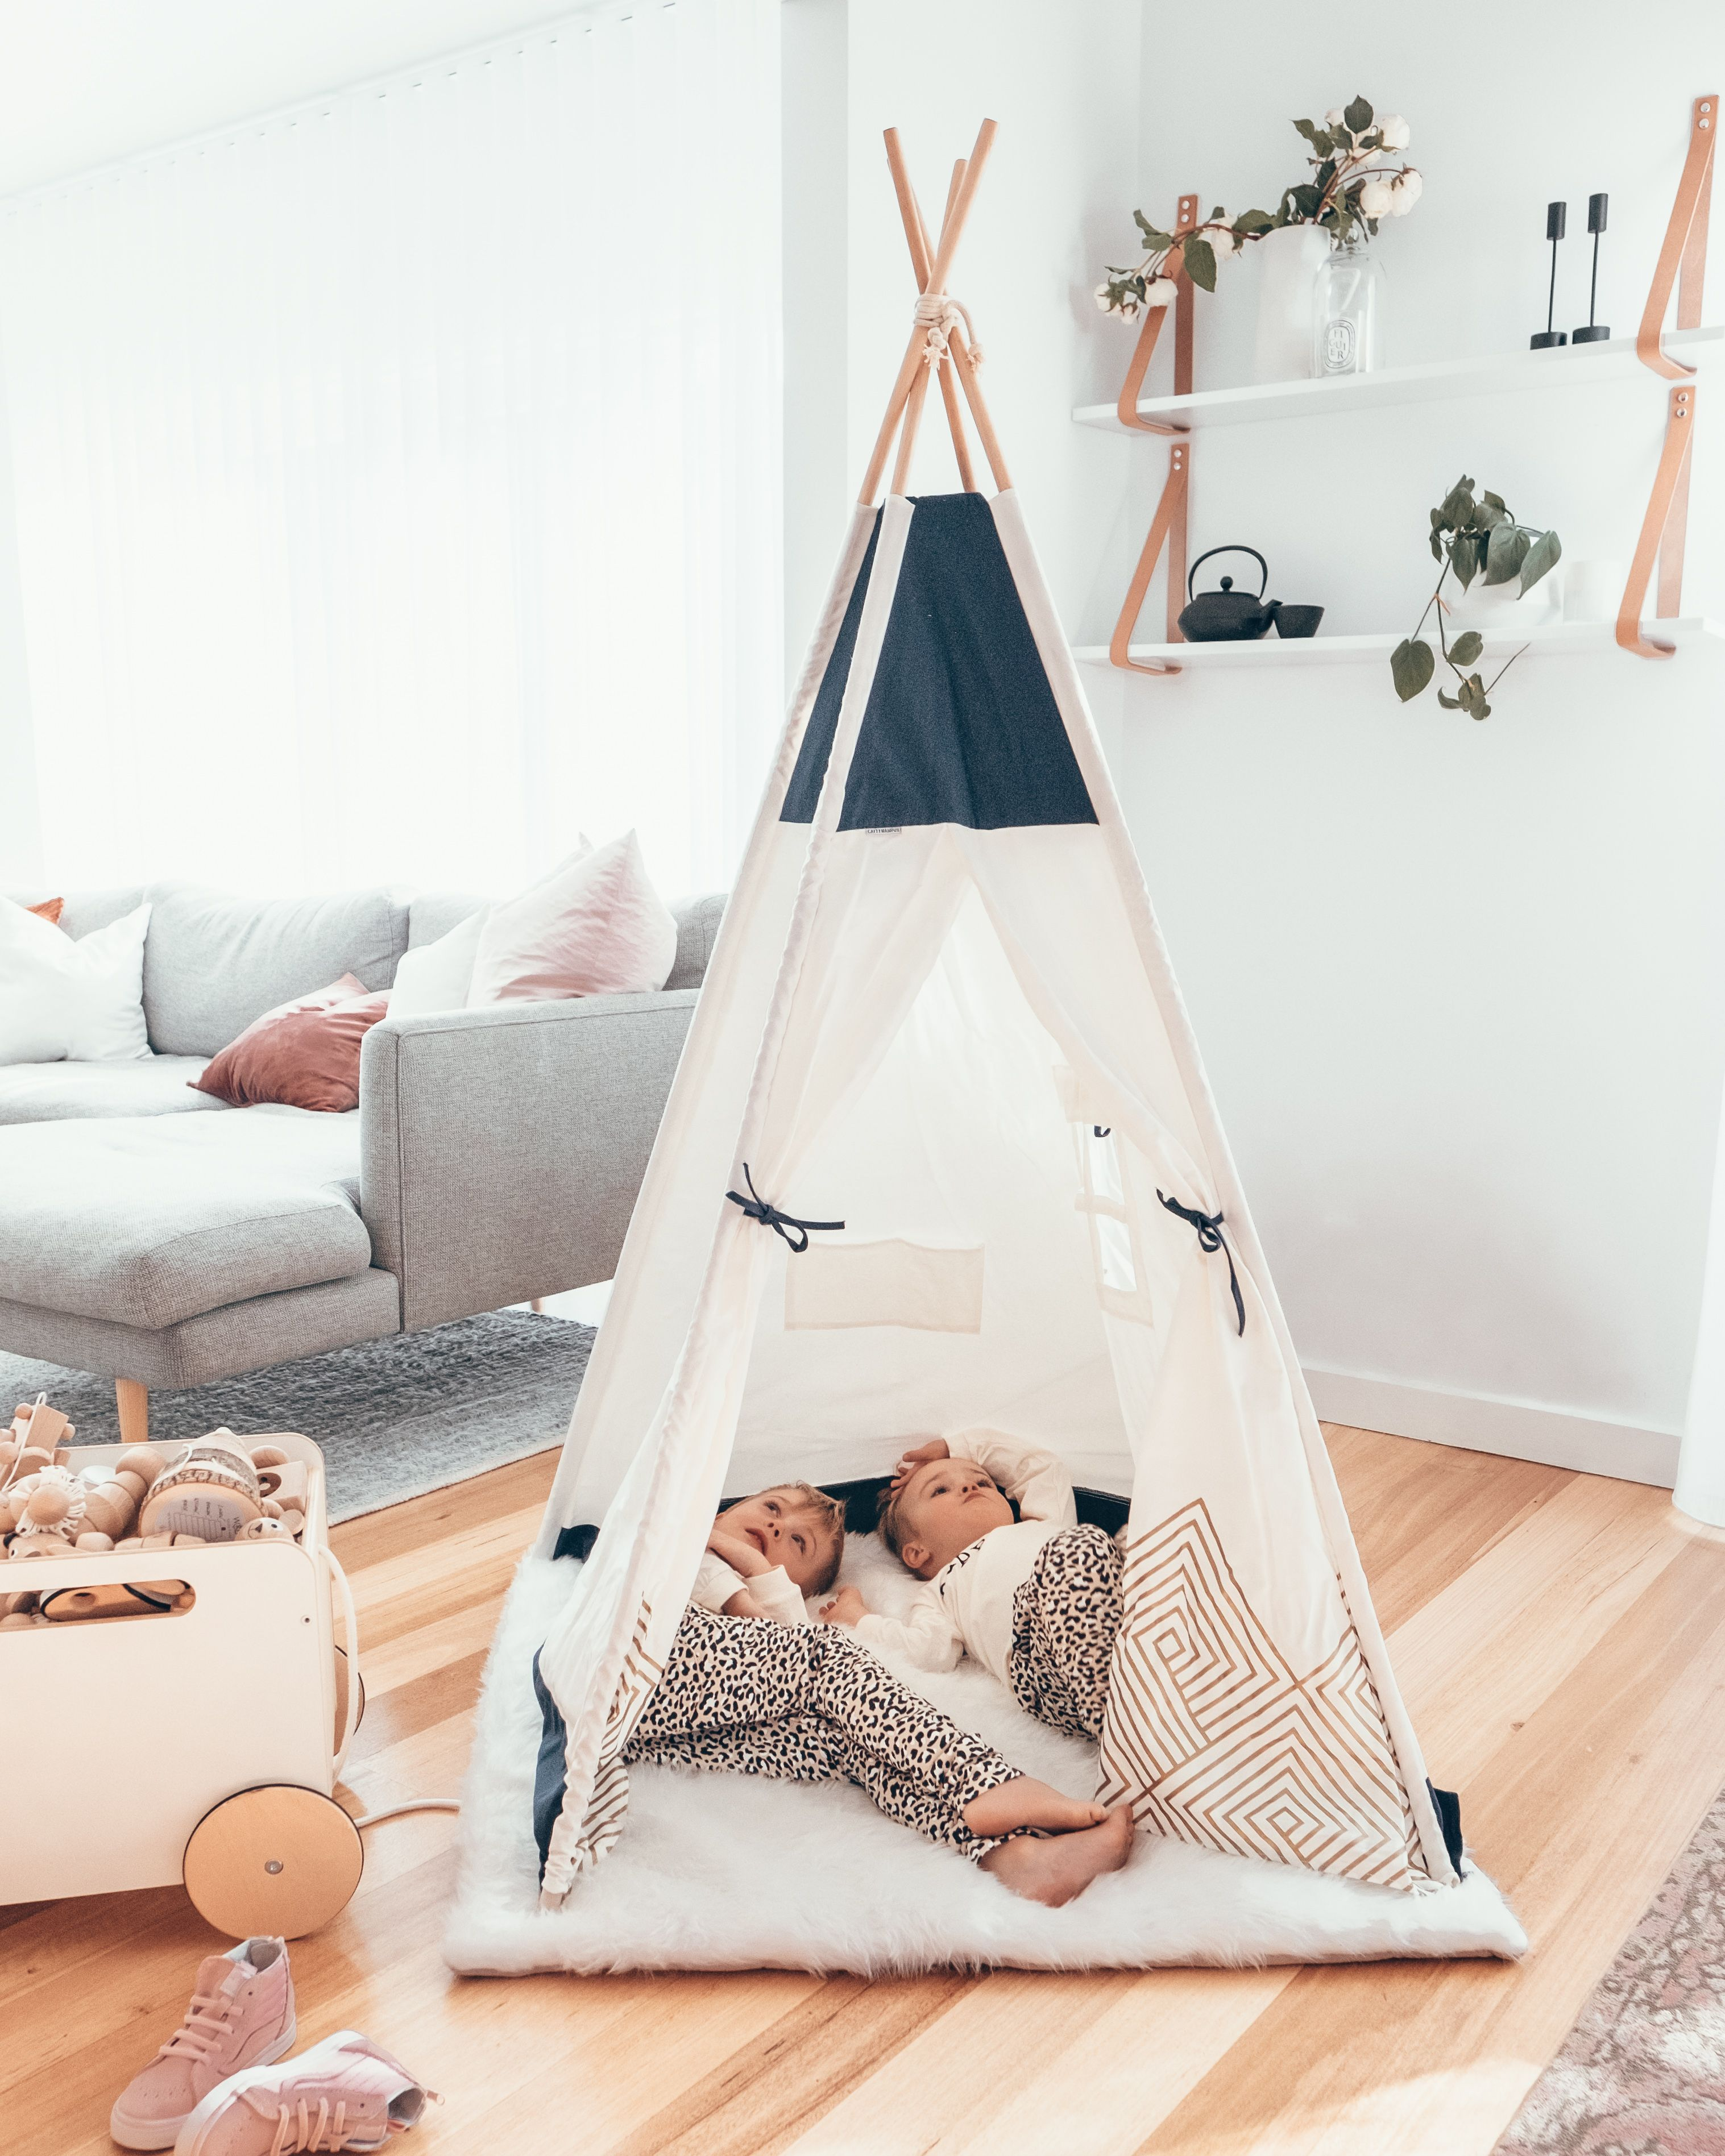 Benefits of Imaginary Play with a Teepee Tent Teepee